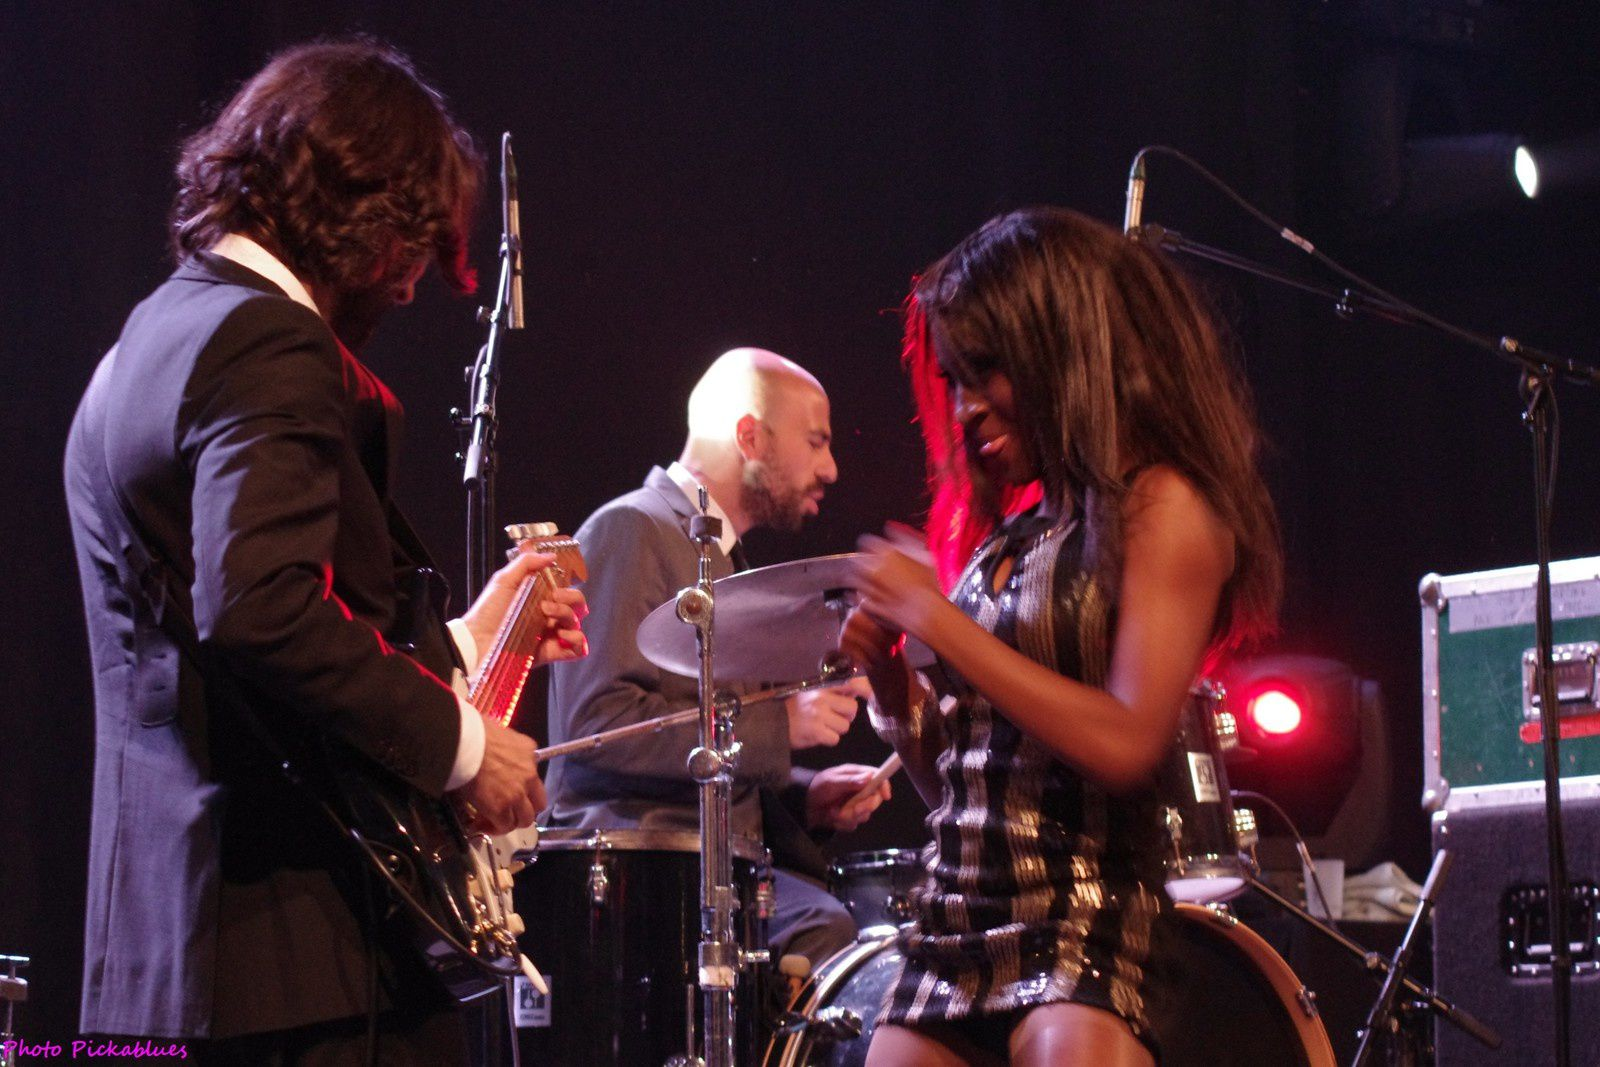 The Excitements - 1 mai 2015 - Roots & Roses Festival, Lessines (B)